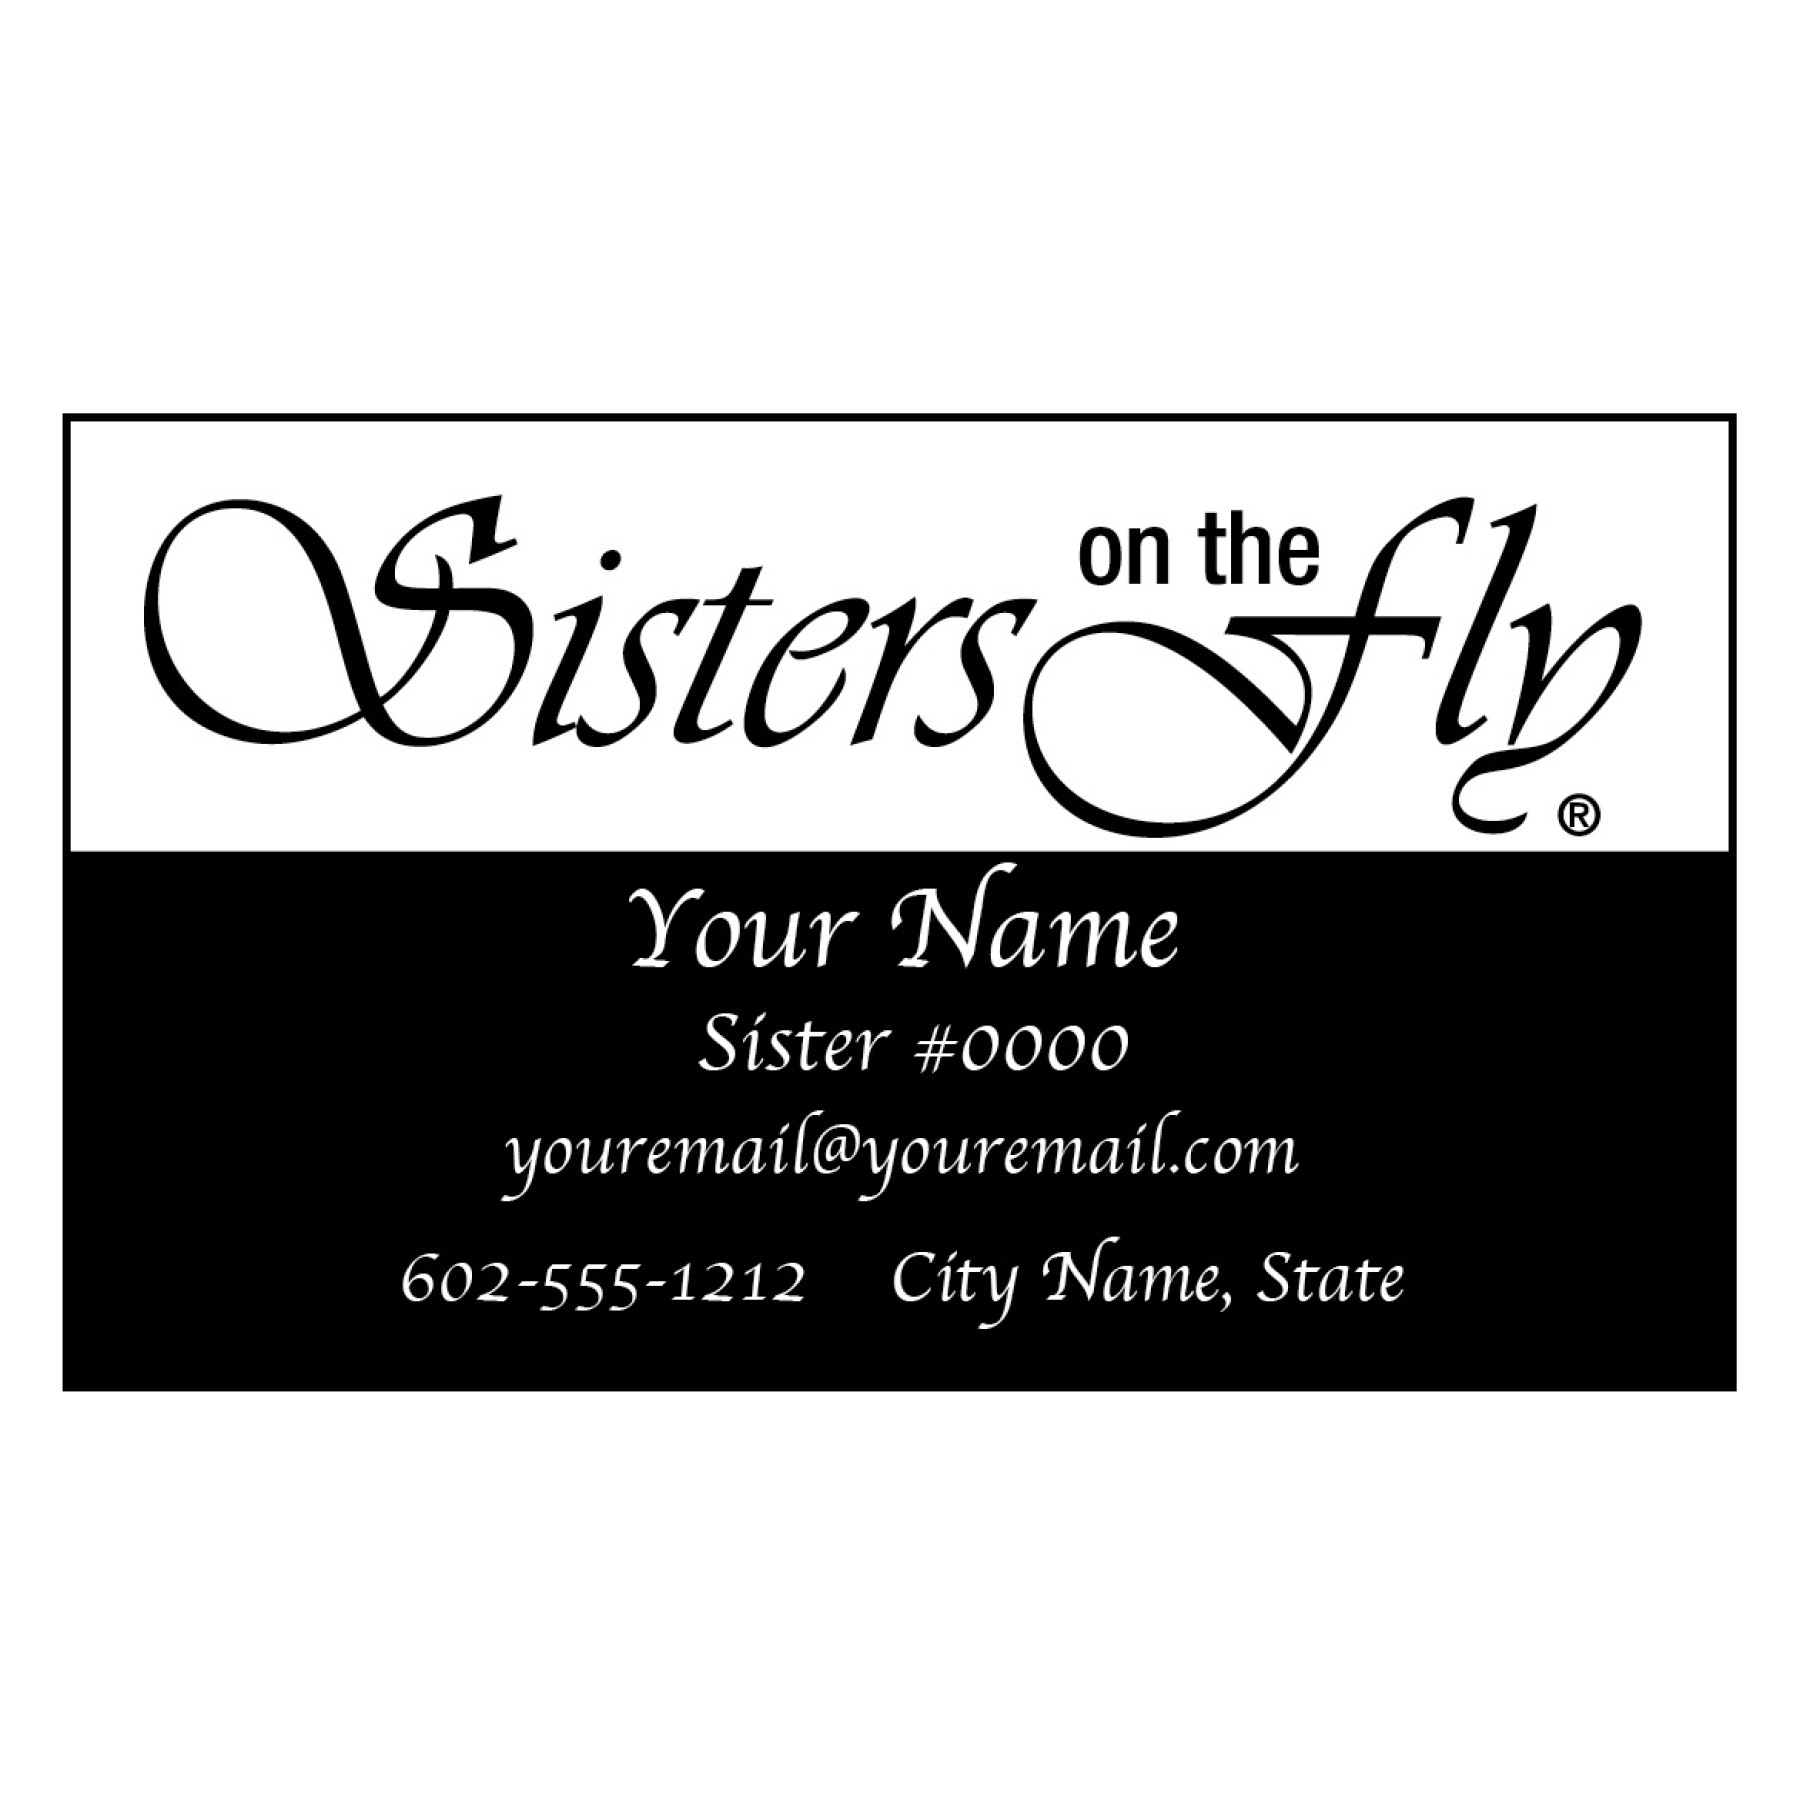 Custom SOTF Business Cards - Sisters on the Fly